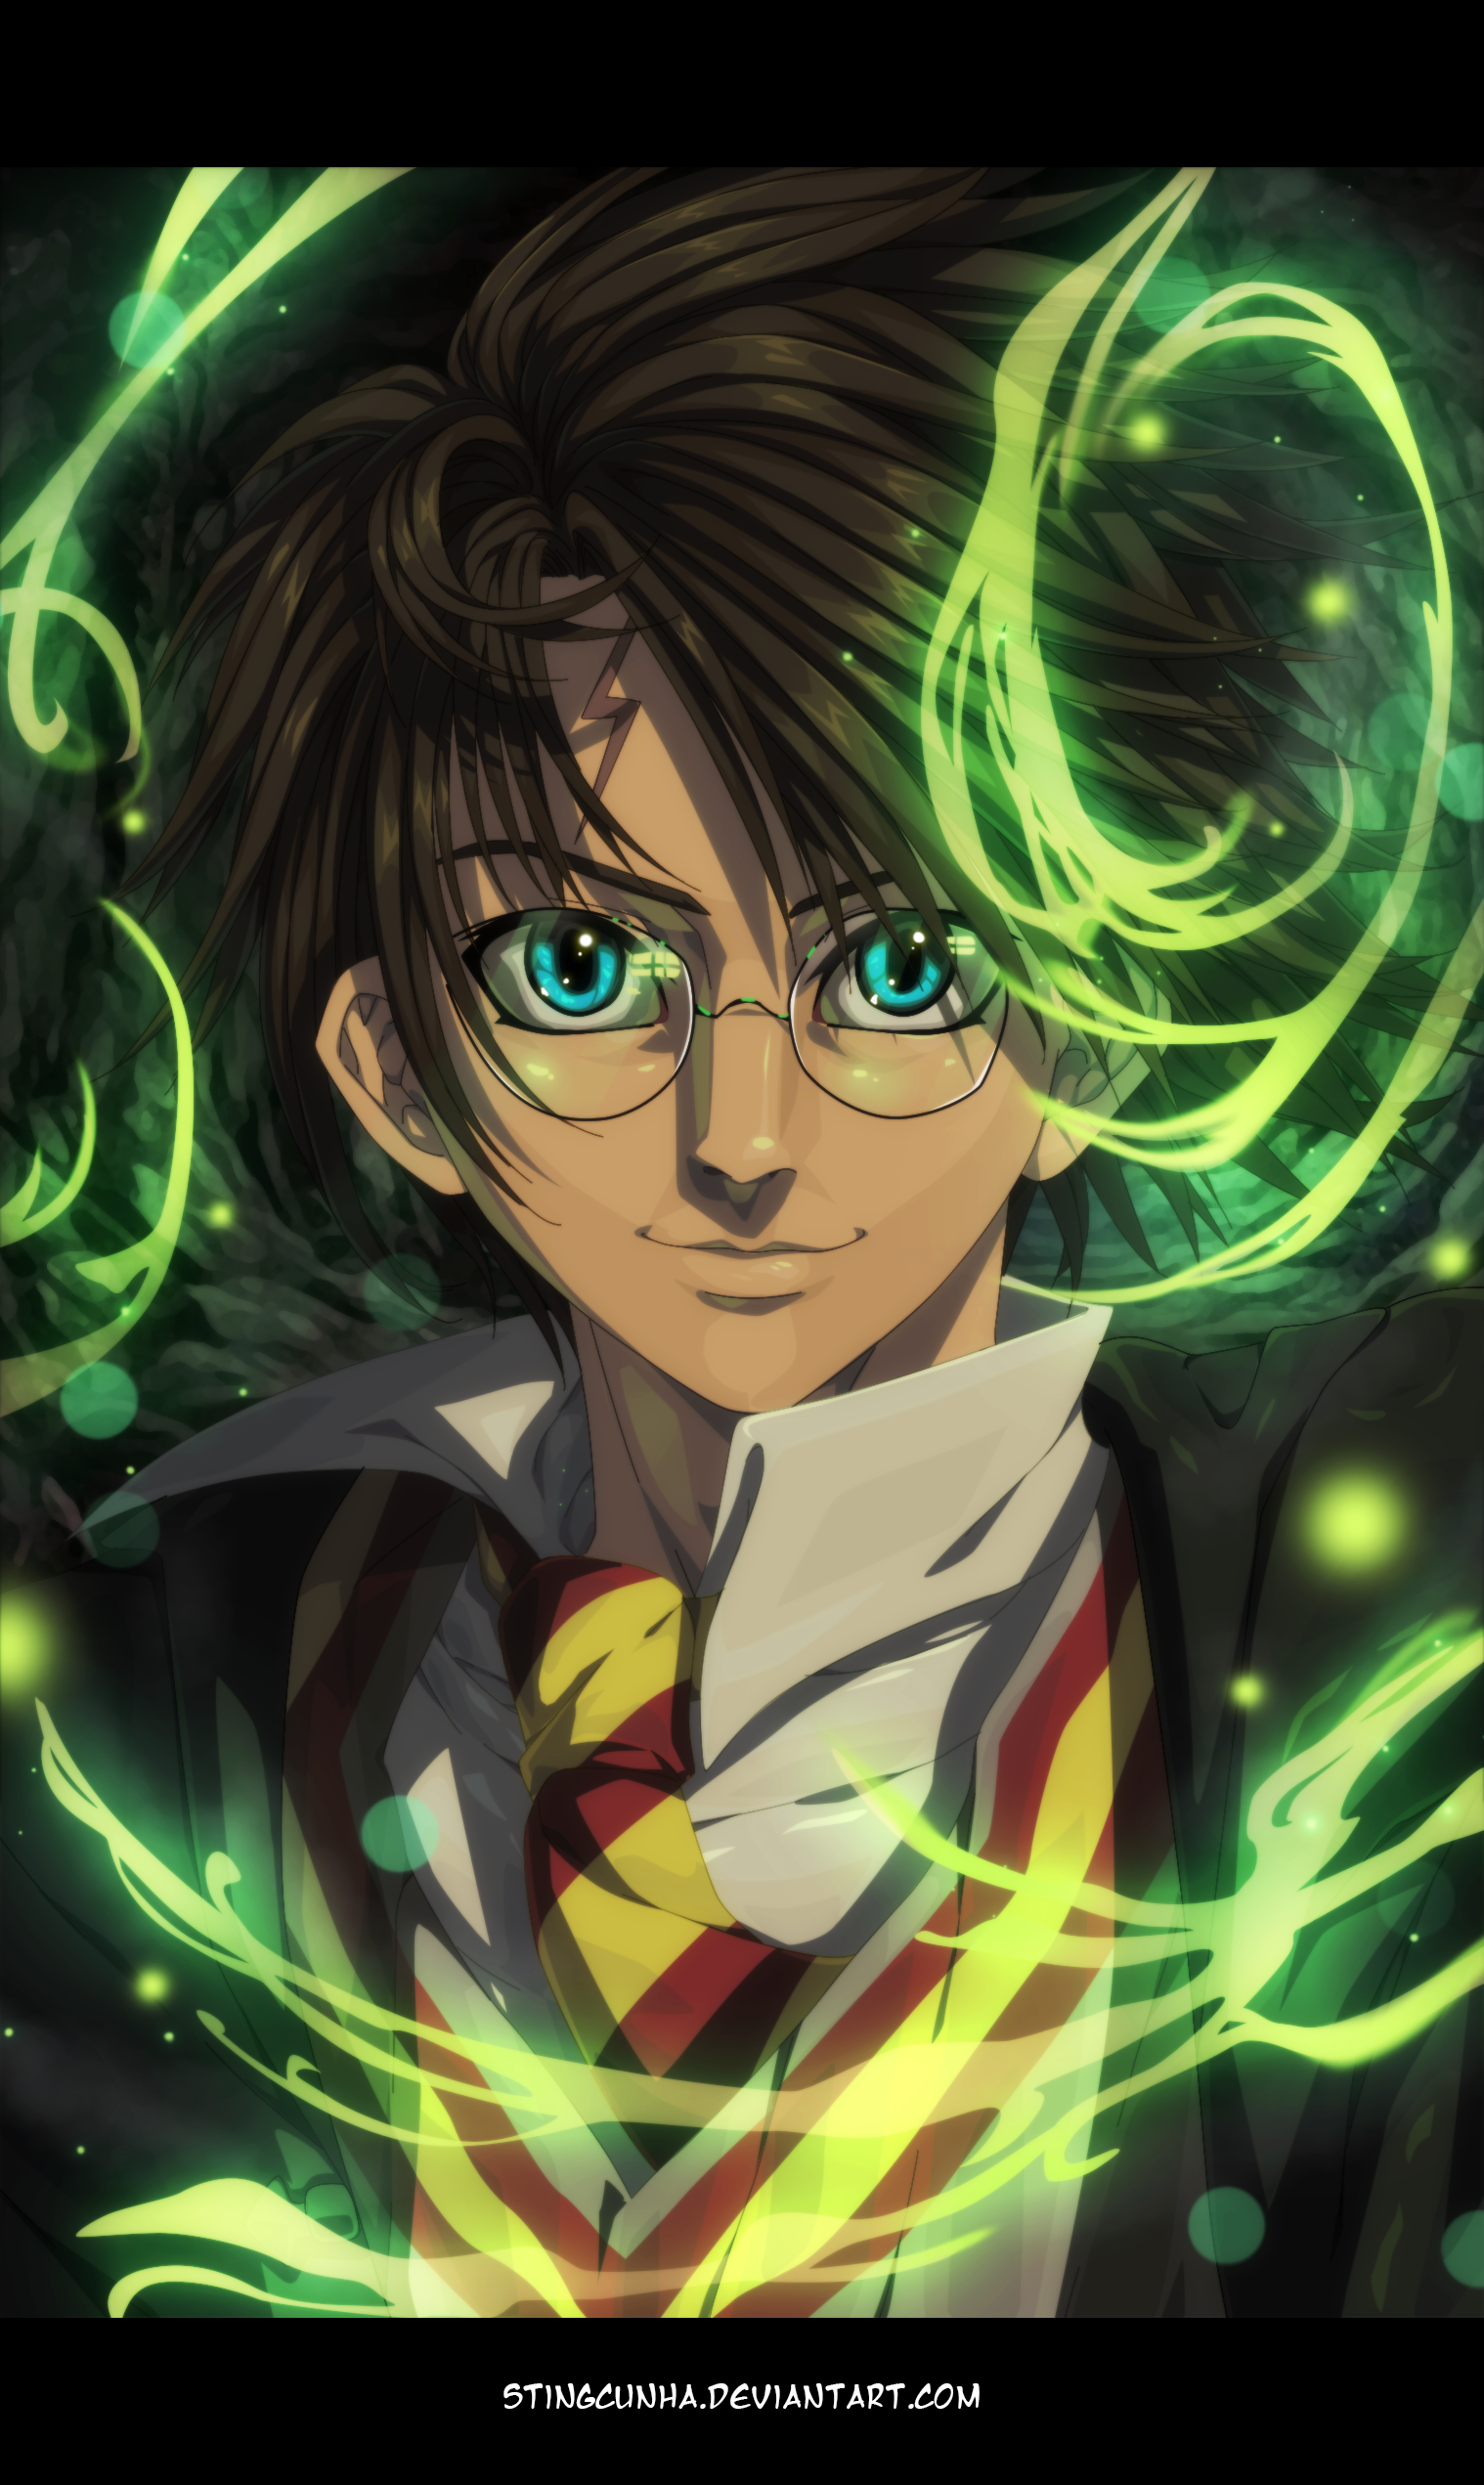 Harry Potter Anime Version by StingCunha on DeviantArt in